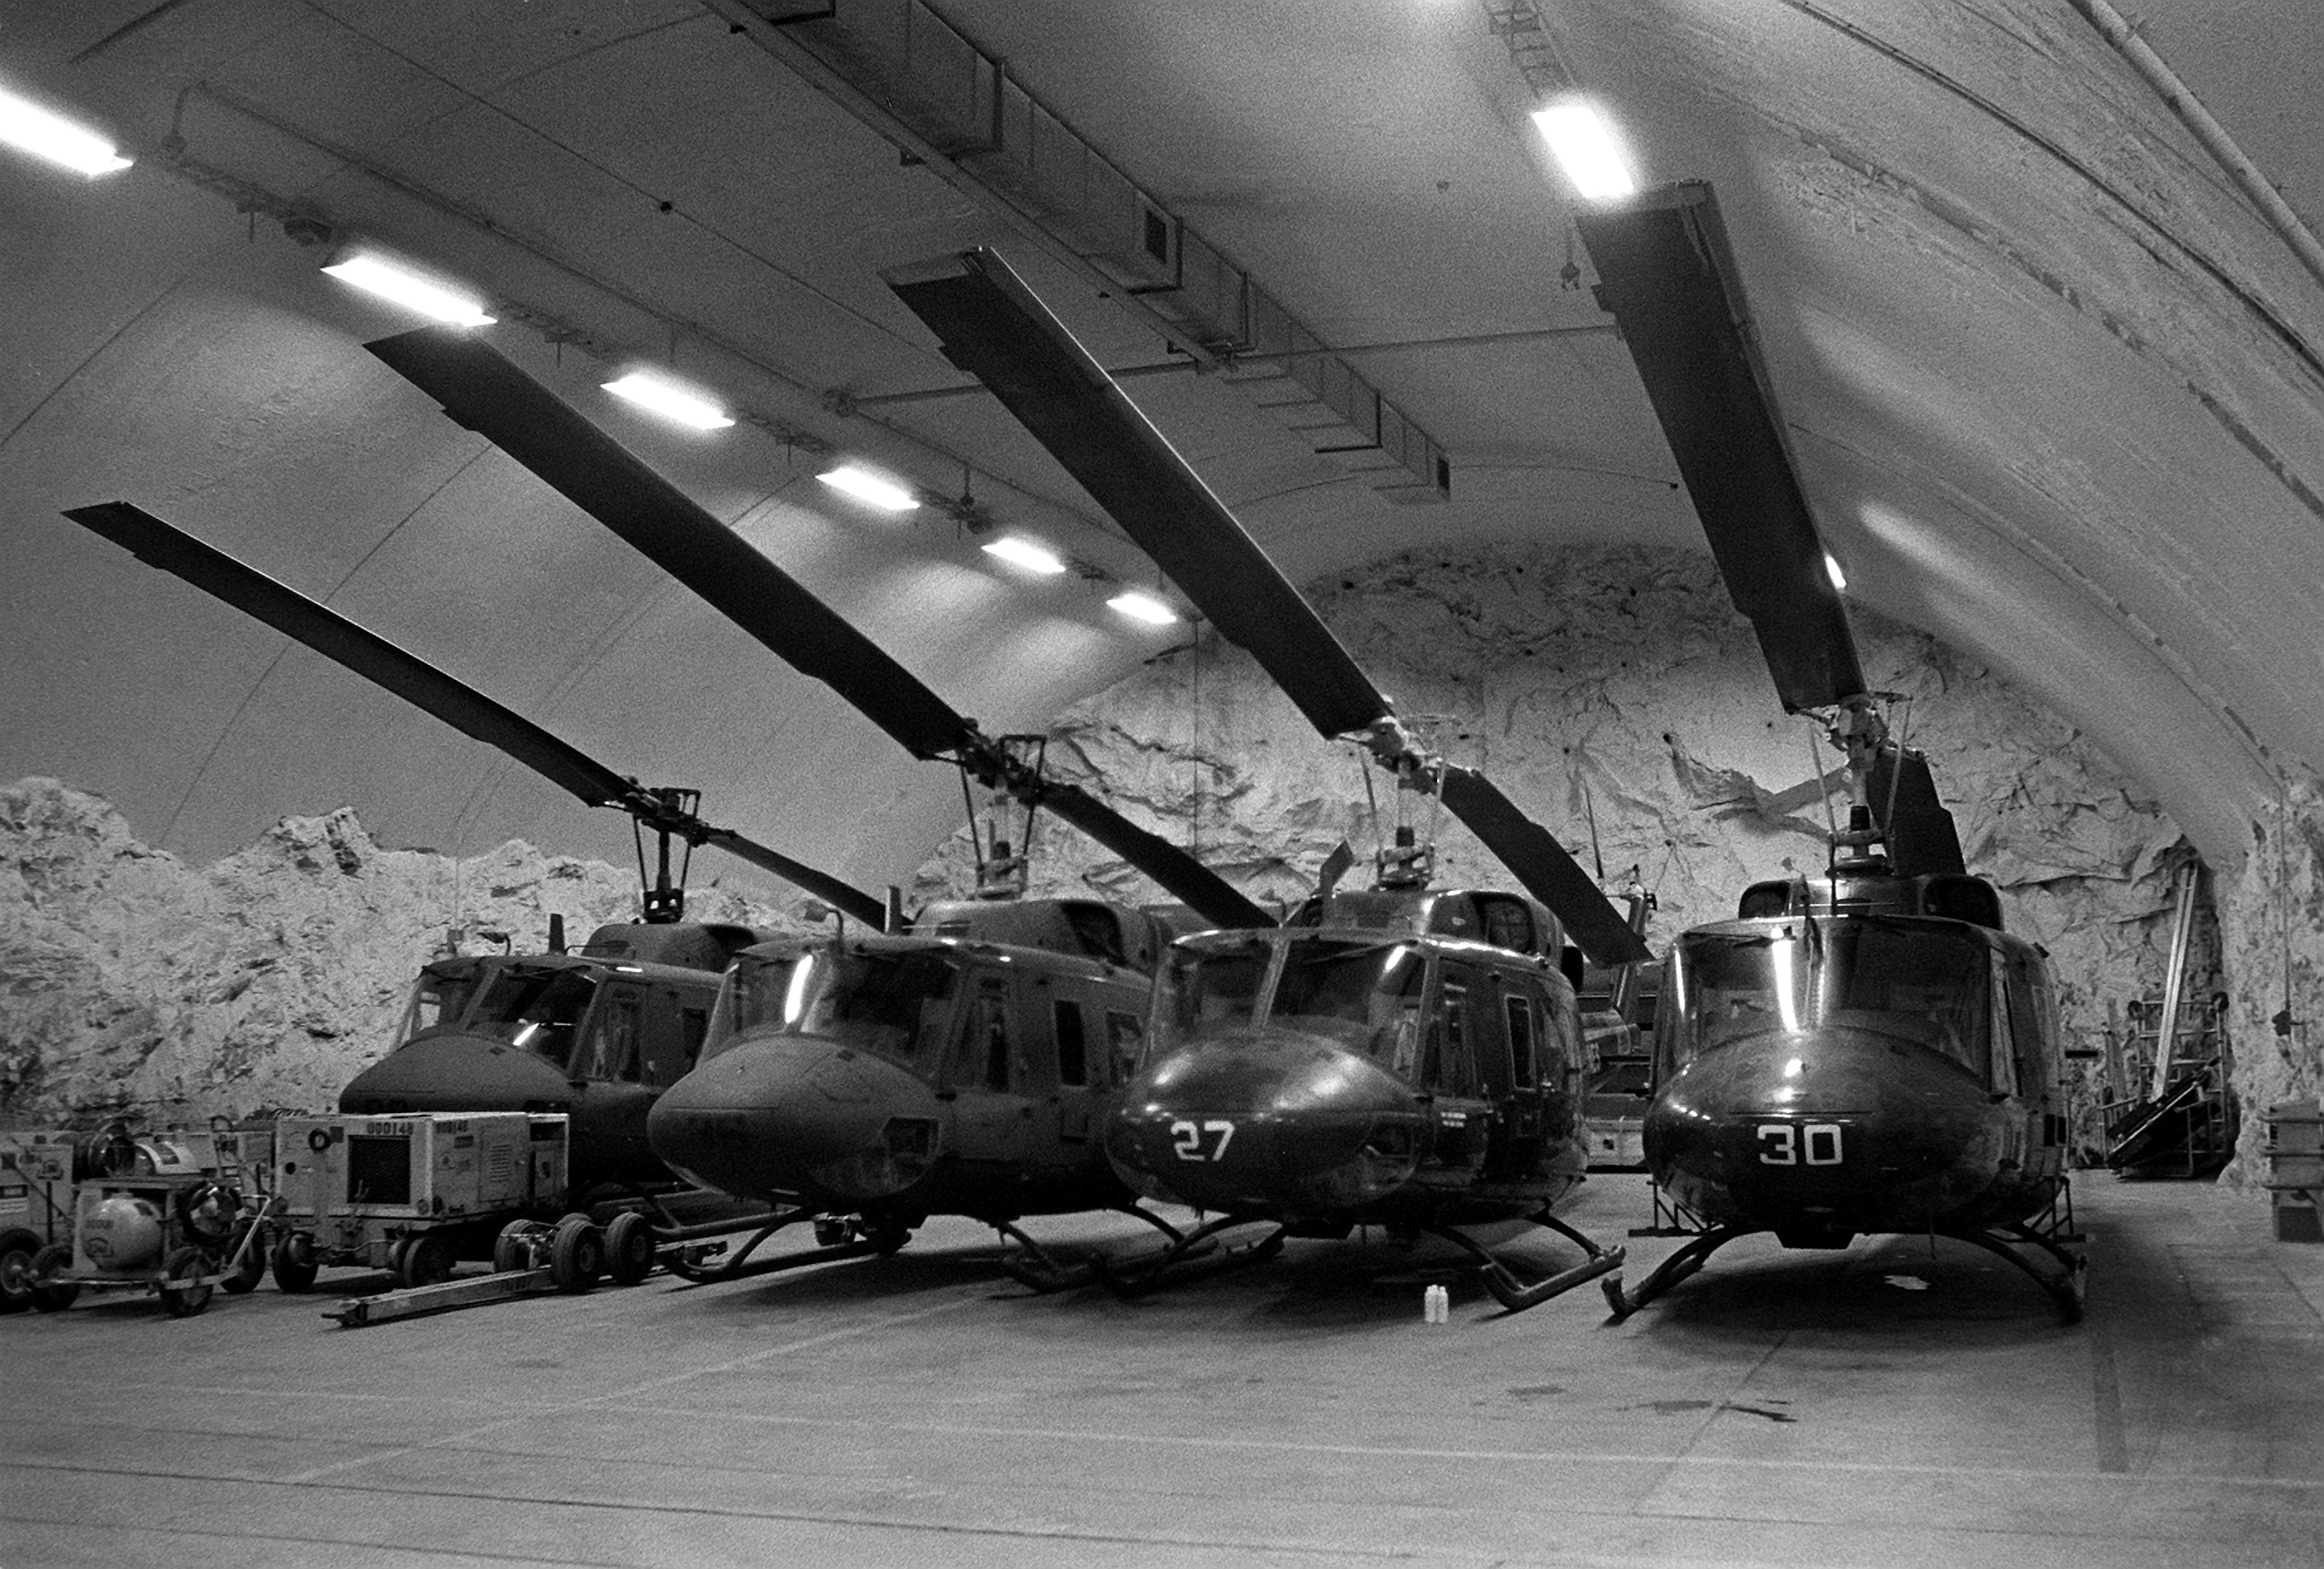 Marine UH-1N Iroquois helicopters are parked in a rock hangar. This area was once used by the Norwegians for aircraft washdowns, repairs and concealment